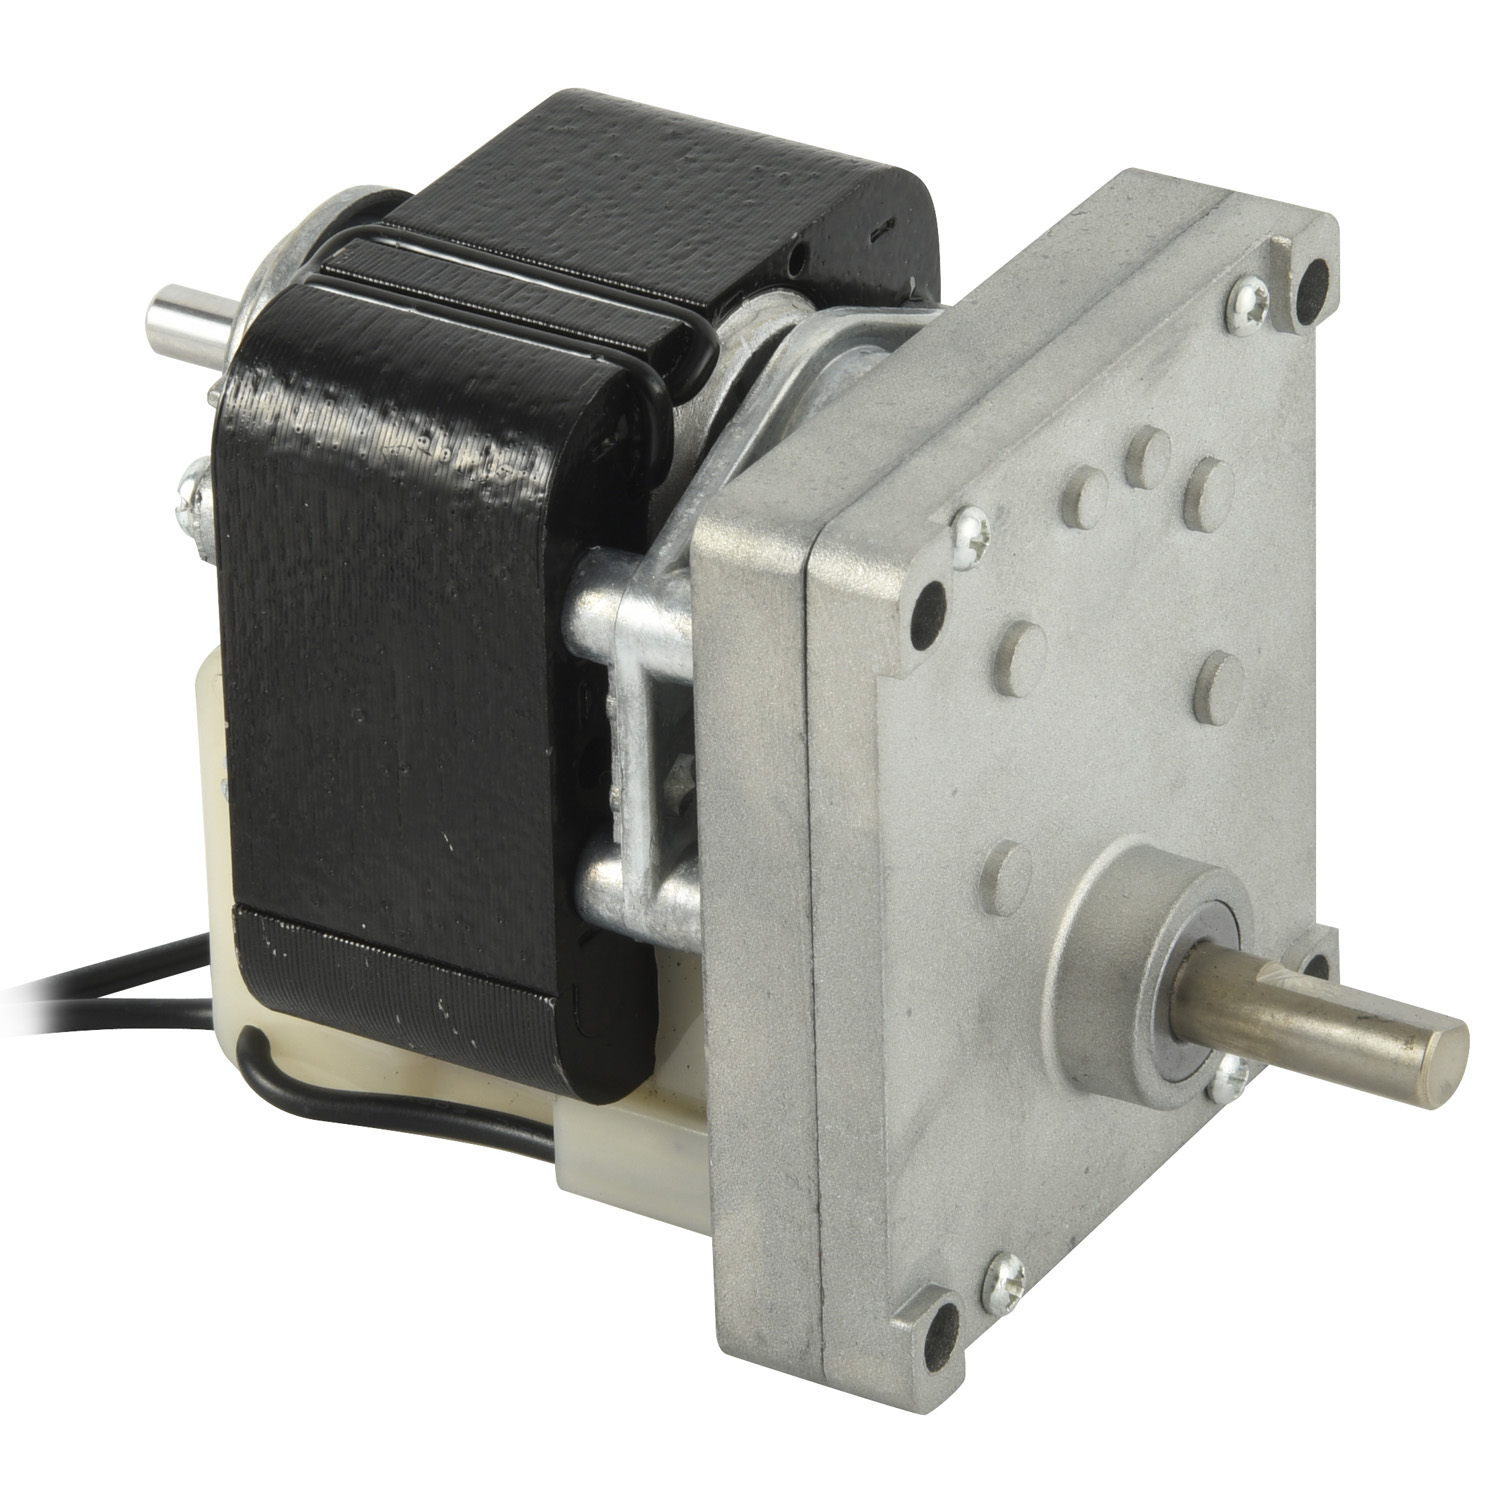 50HZ AC Shaded Pole Motor for Oven